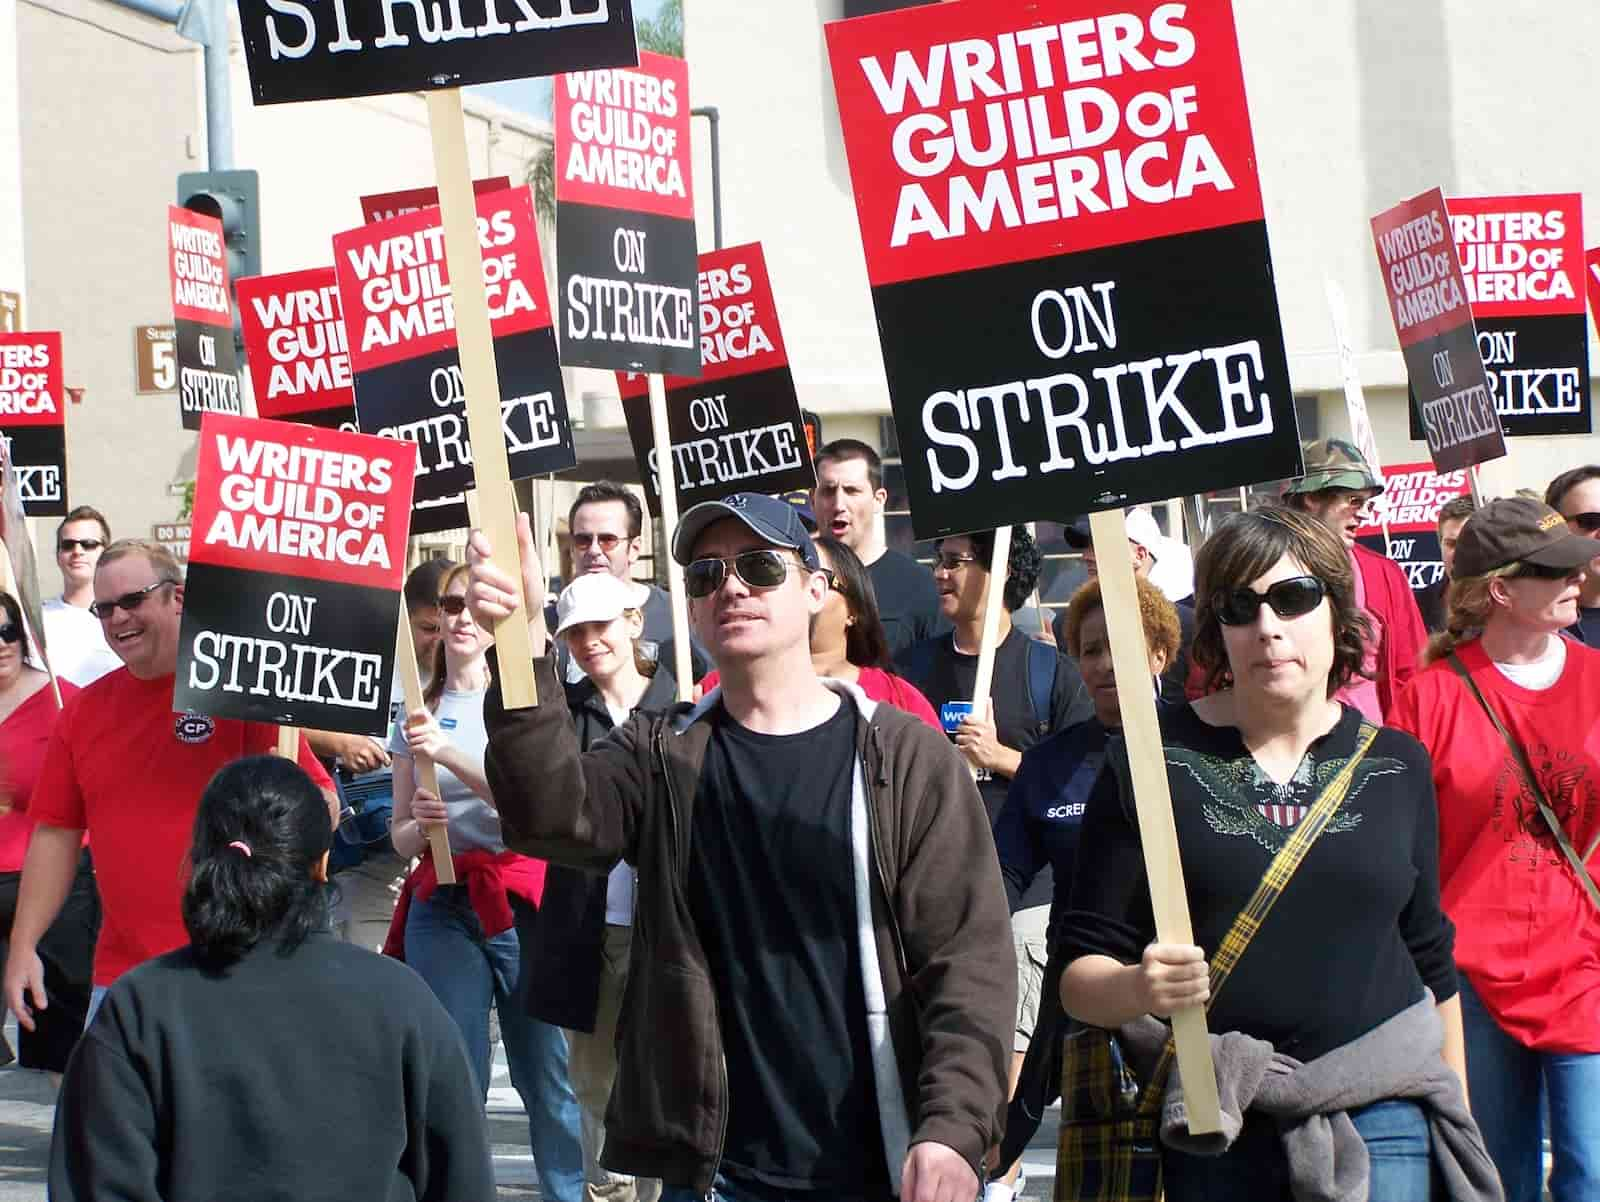 Best Screenwriting Website - Script Writers - The WGA Writers Strike